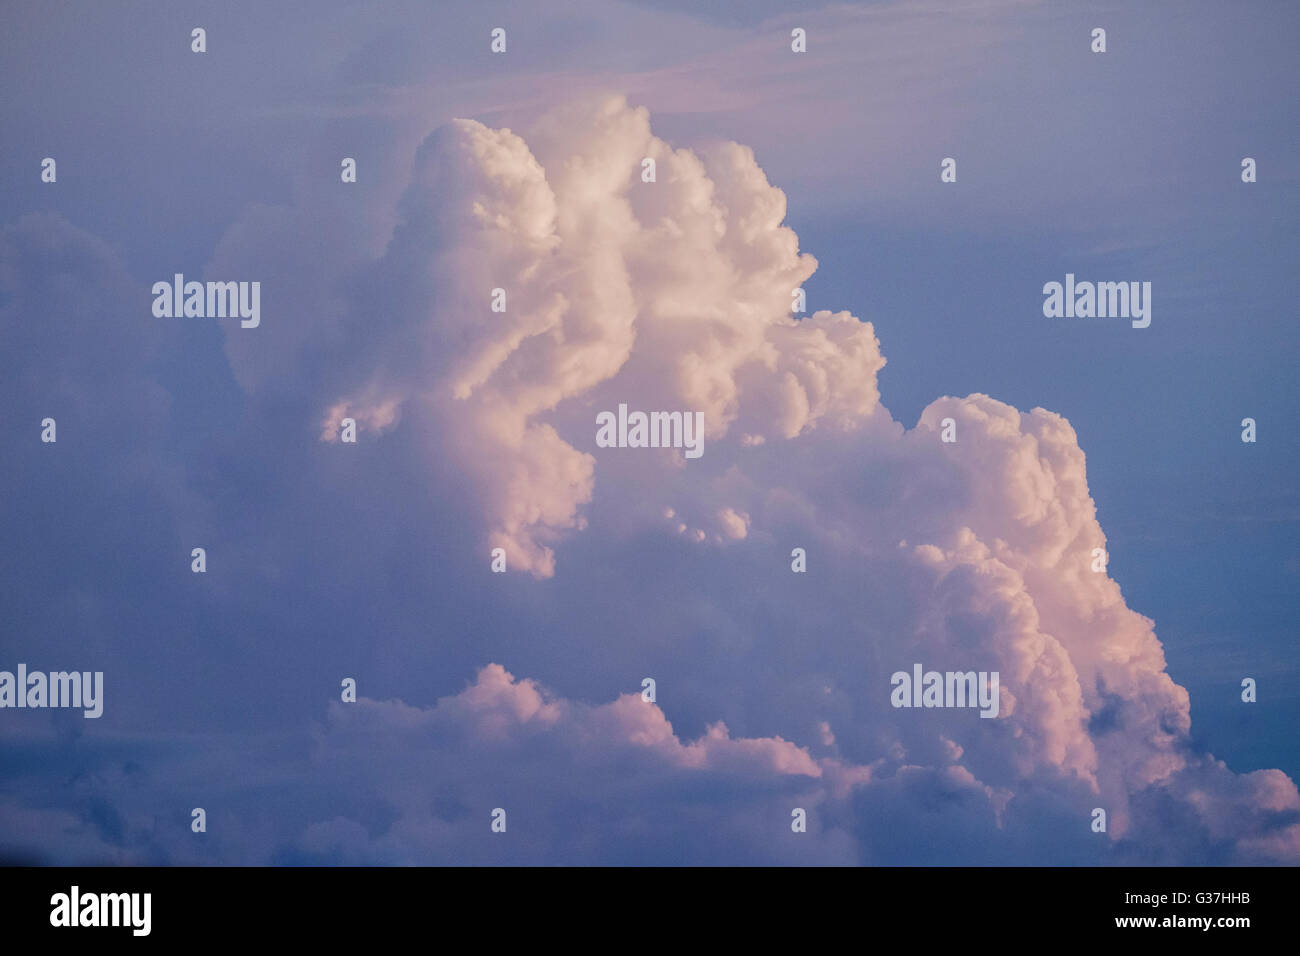 A towering Cumulus cloud in evening sky over Oklahoma City, Oklahoma, USA. - Stock Image